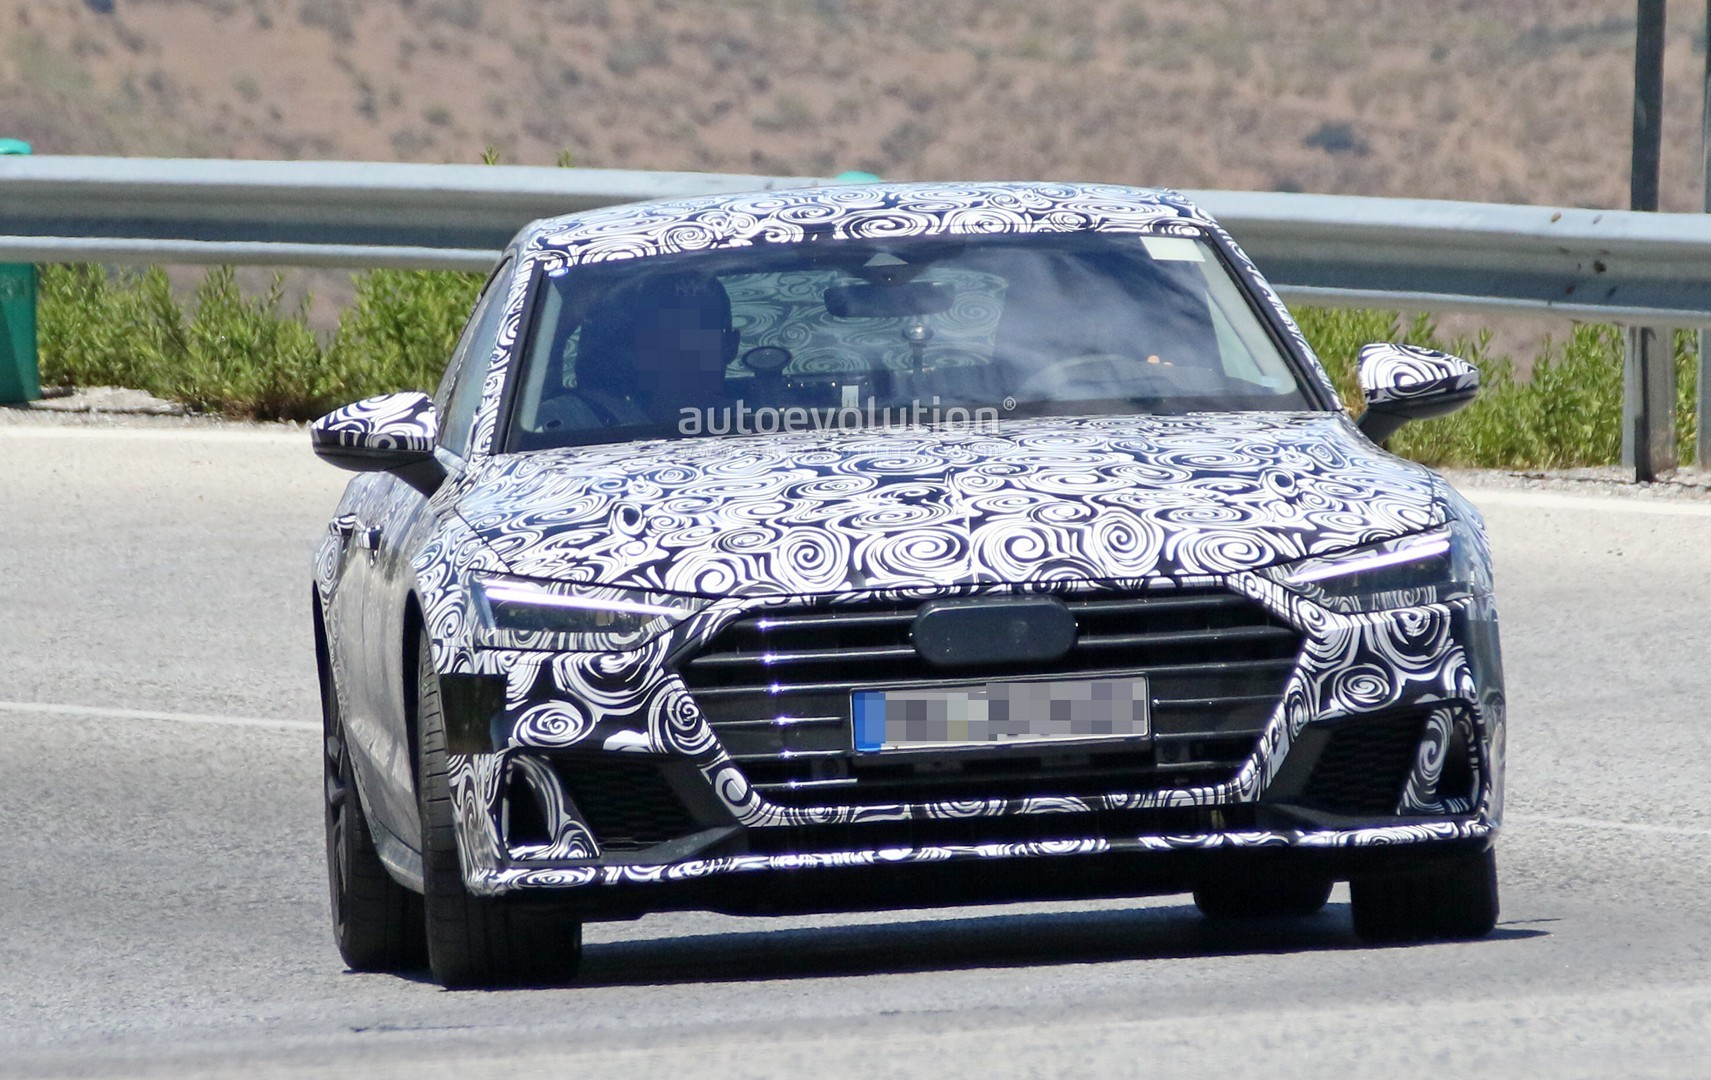 2019 audi s7 spied in detail looks ready to downsize to 2. Black Bedroom Furniture Sets. Home Design Ideas